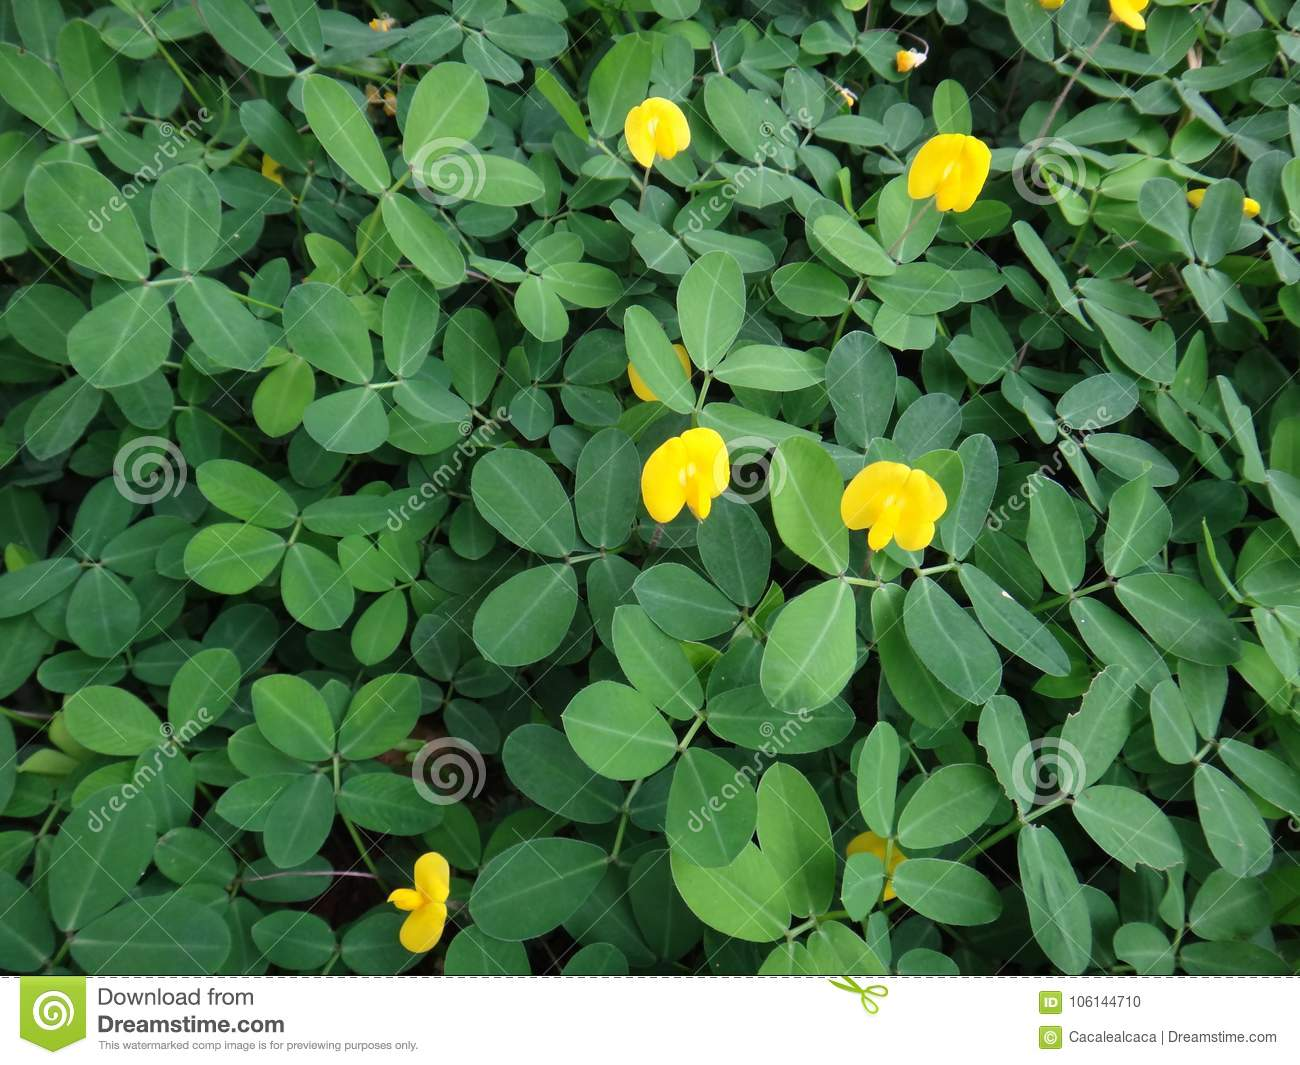 Plant of the creeping peanut with small yellow flowers stock photo download comp mightylinksfo